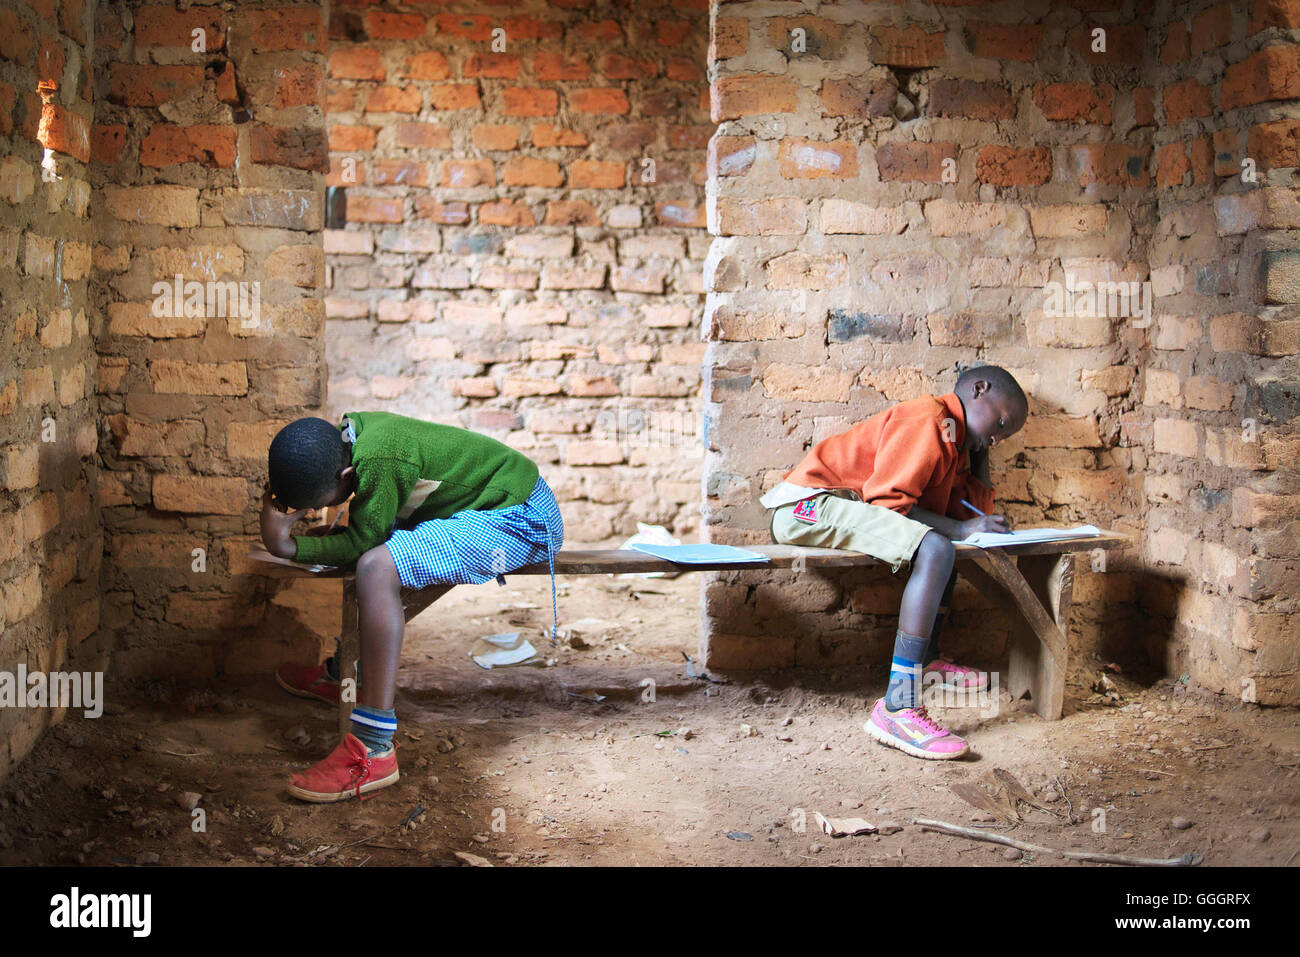 Two african school children in a rural school in Uganda/Rwanda take a school test, sitting opposite each other on - Stock Image